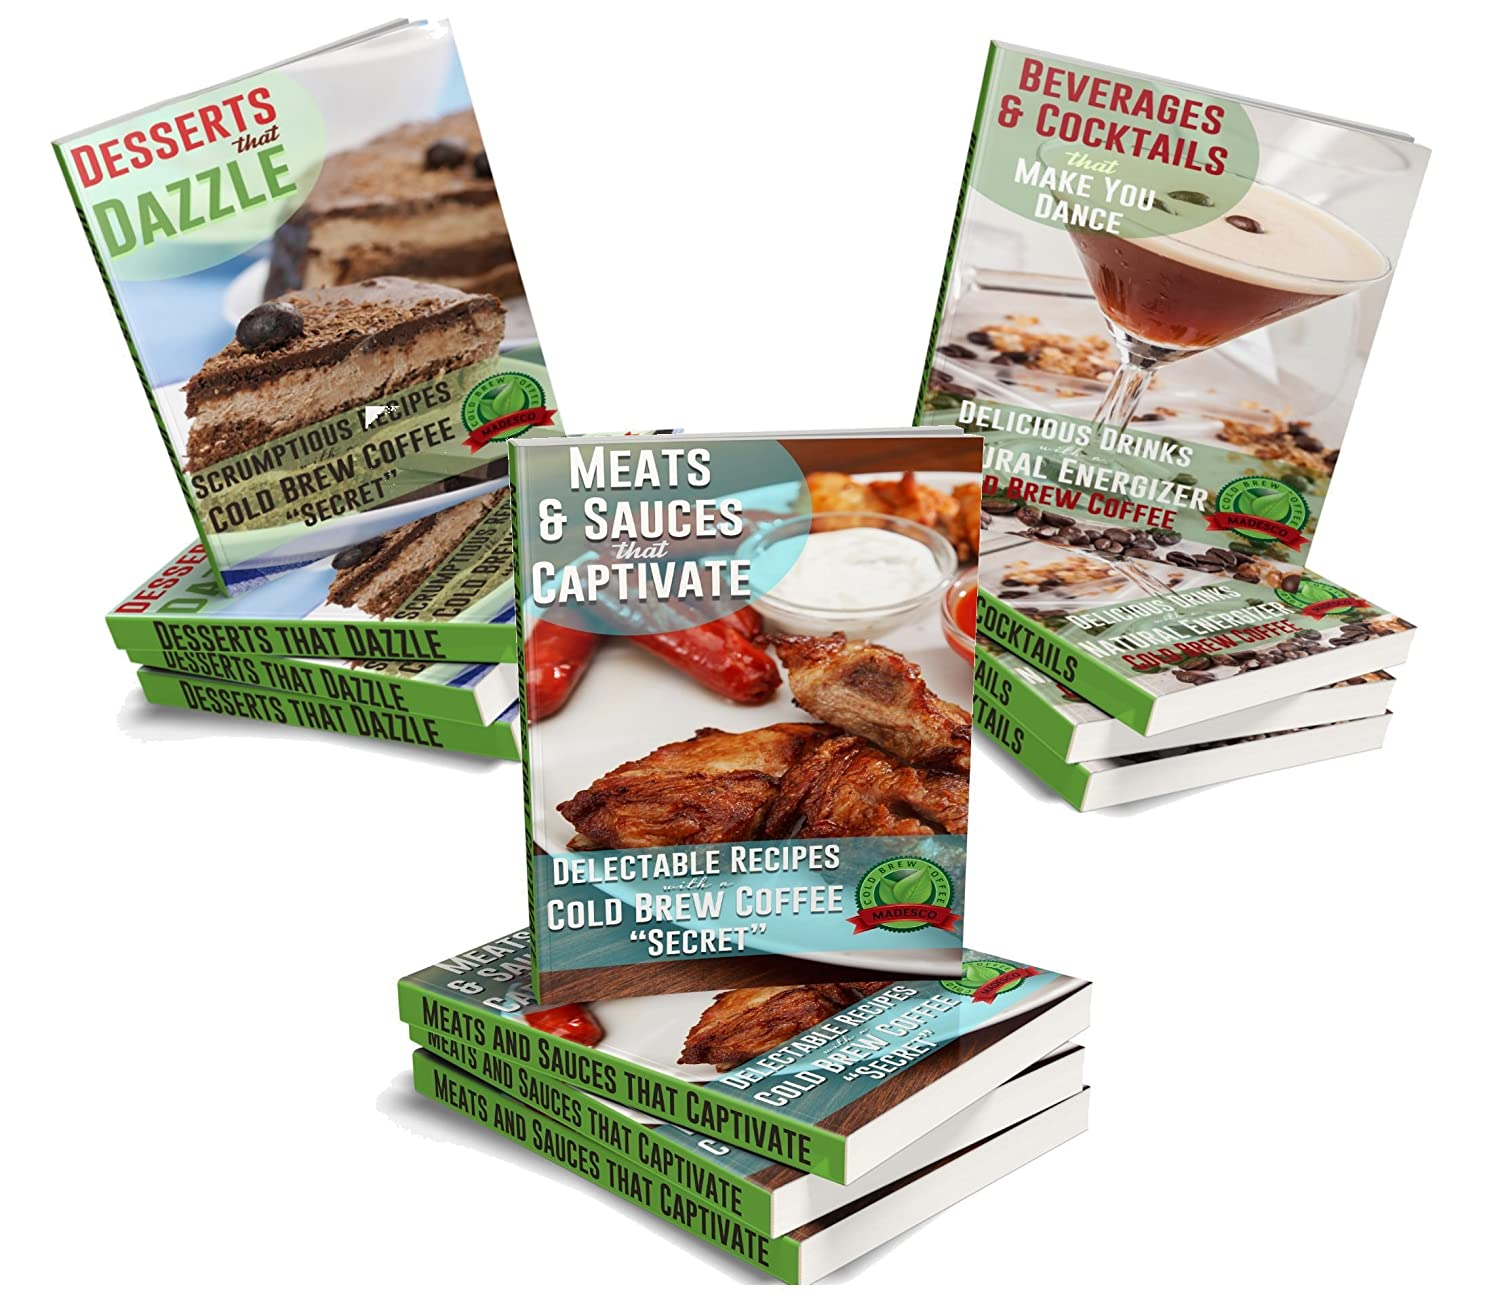 Cooking with Cold Brew Coffee downloadable eBooks and 3 Free Recipe Books Two One-Gallon Cold Brew Coffee Filter Pouches 2-pack